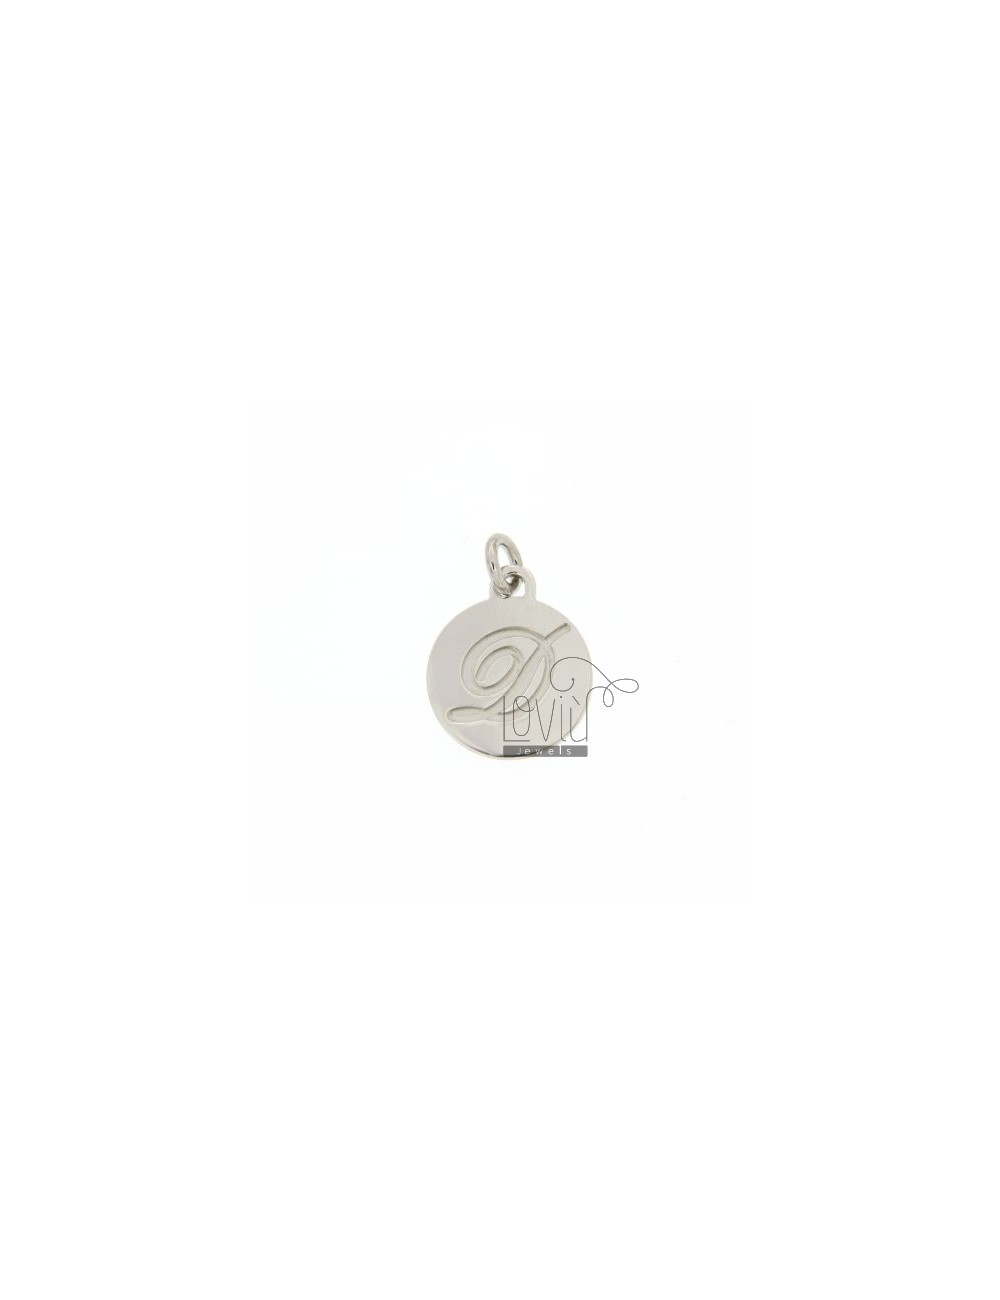 CHARM ROUND 15 MM WITH LETTER D ENGRAVED IN AG TIT 925 ‰ RHODIUM